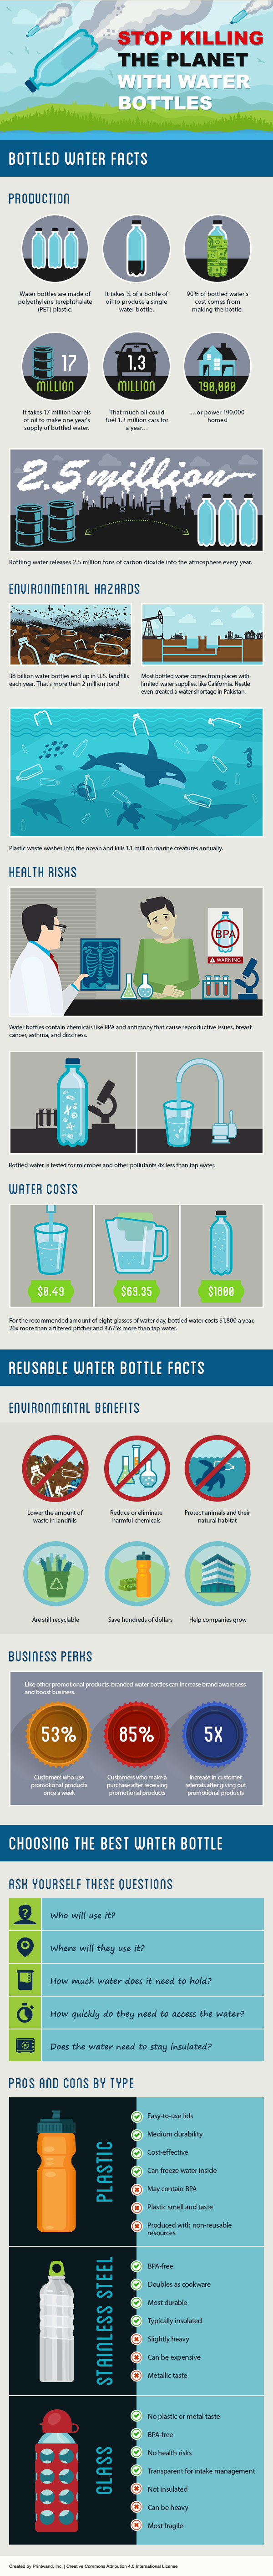 Plastic Water Bottle Pollution [Infographic]